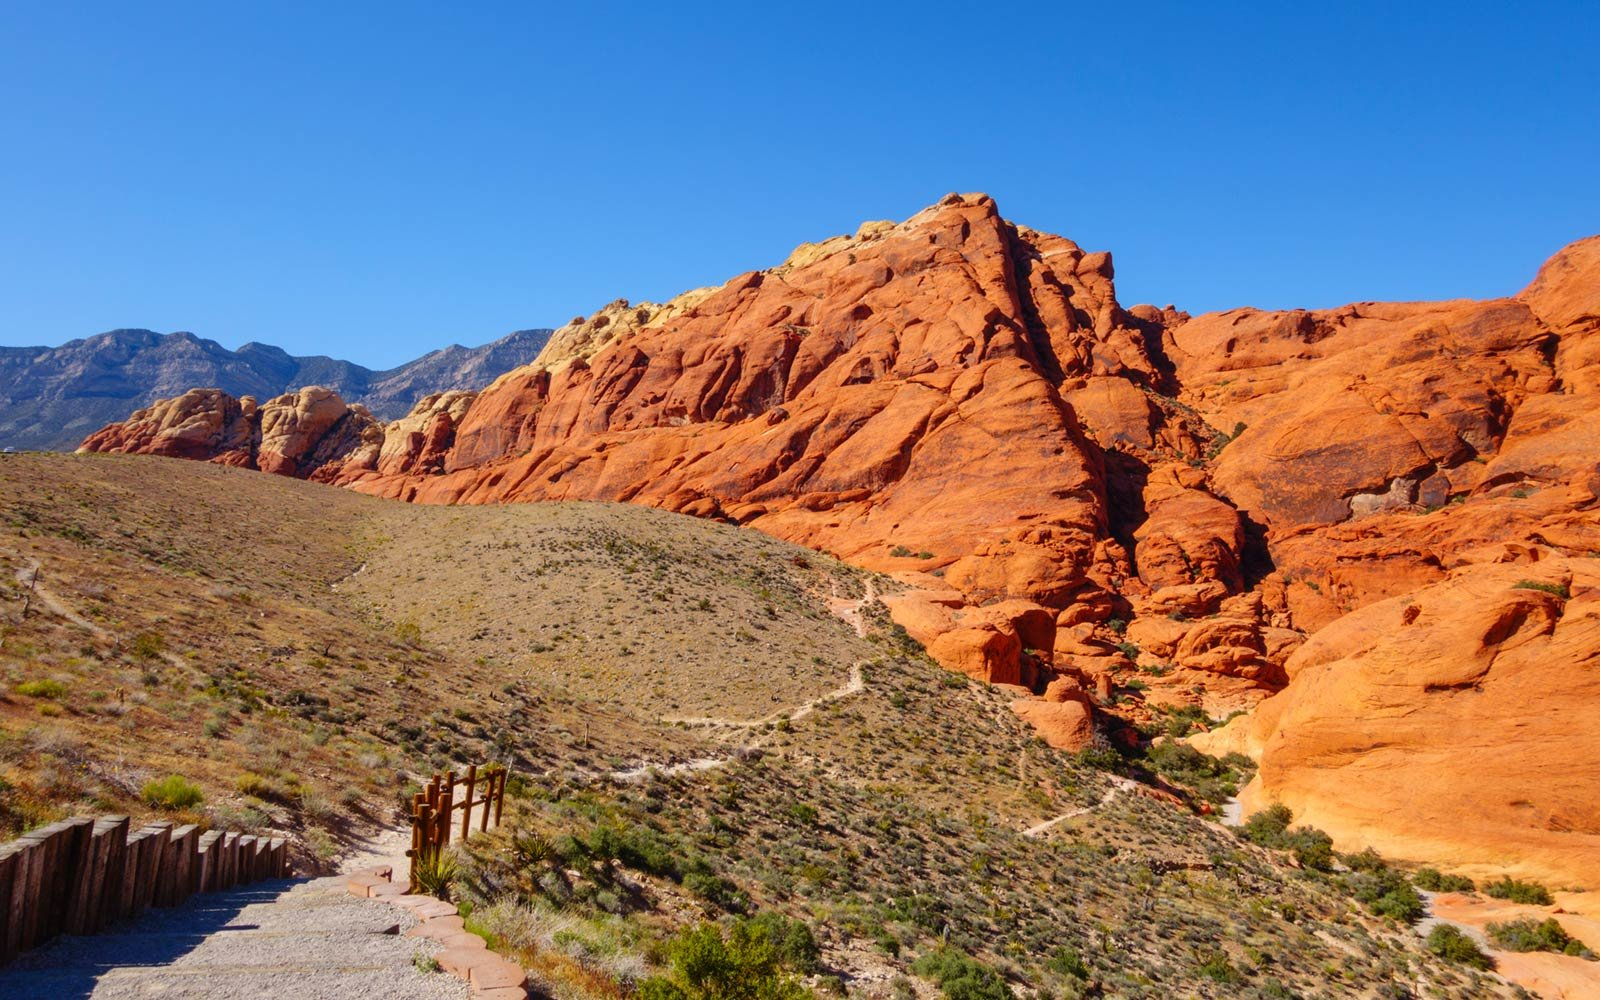 10. Red Rock Canyon National Conservation Area